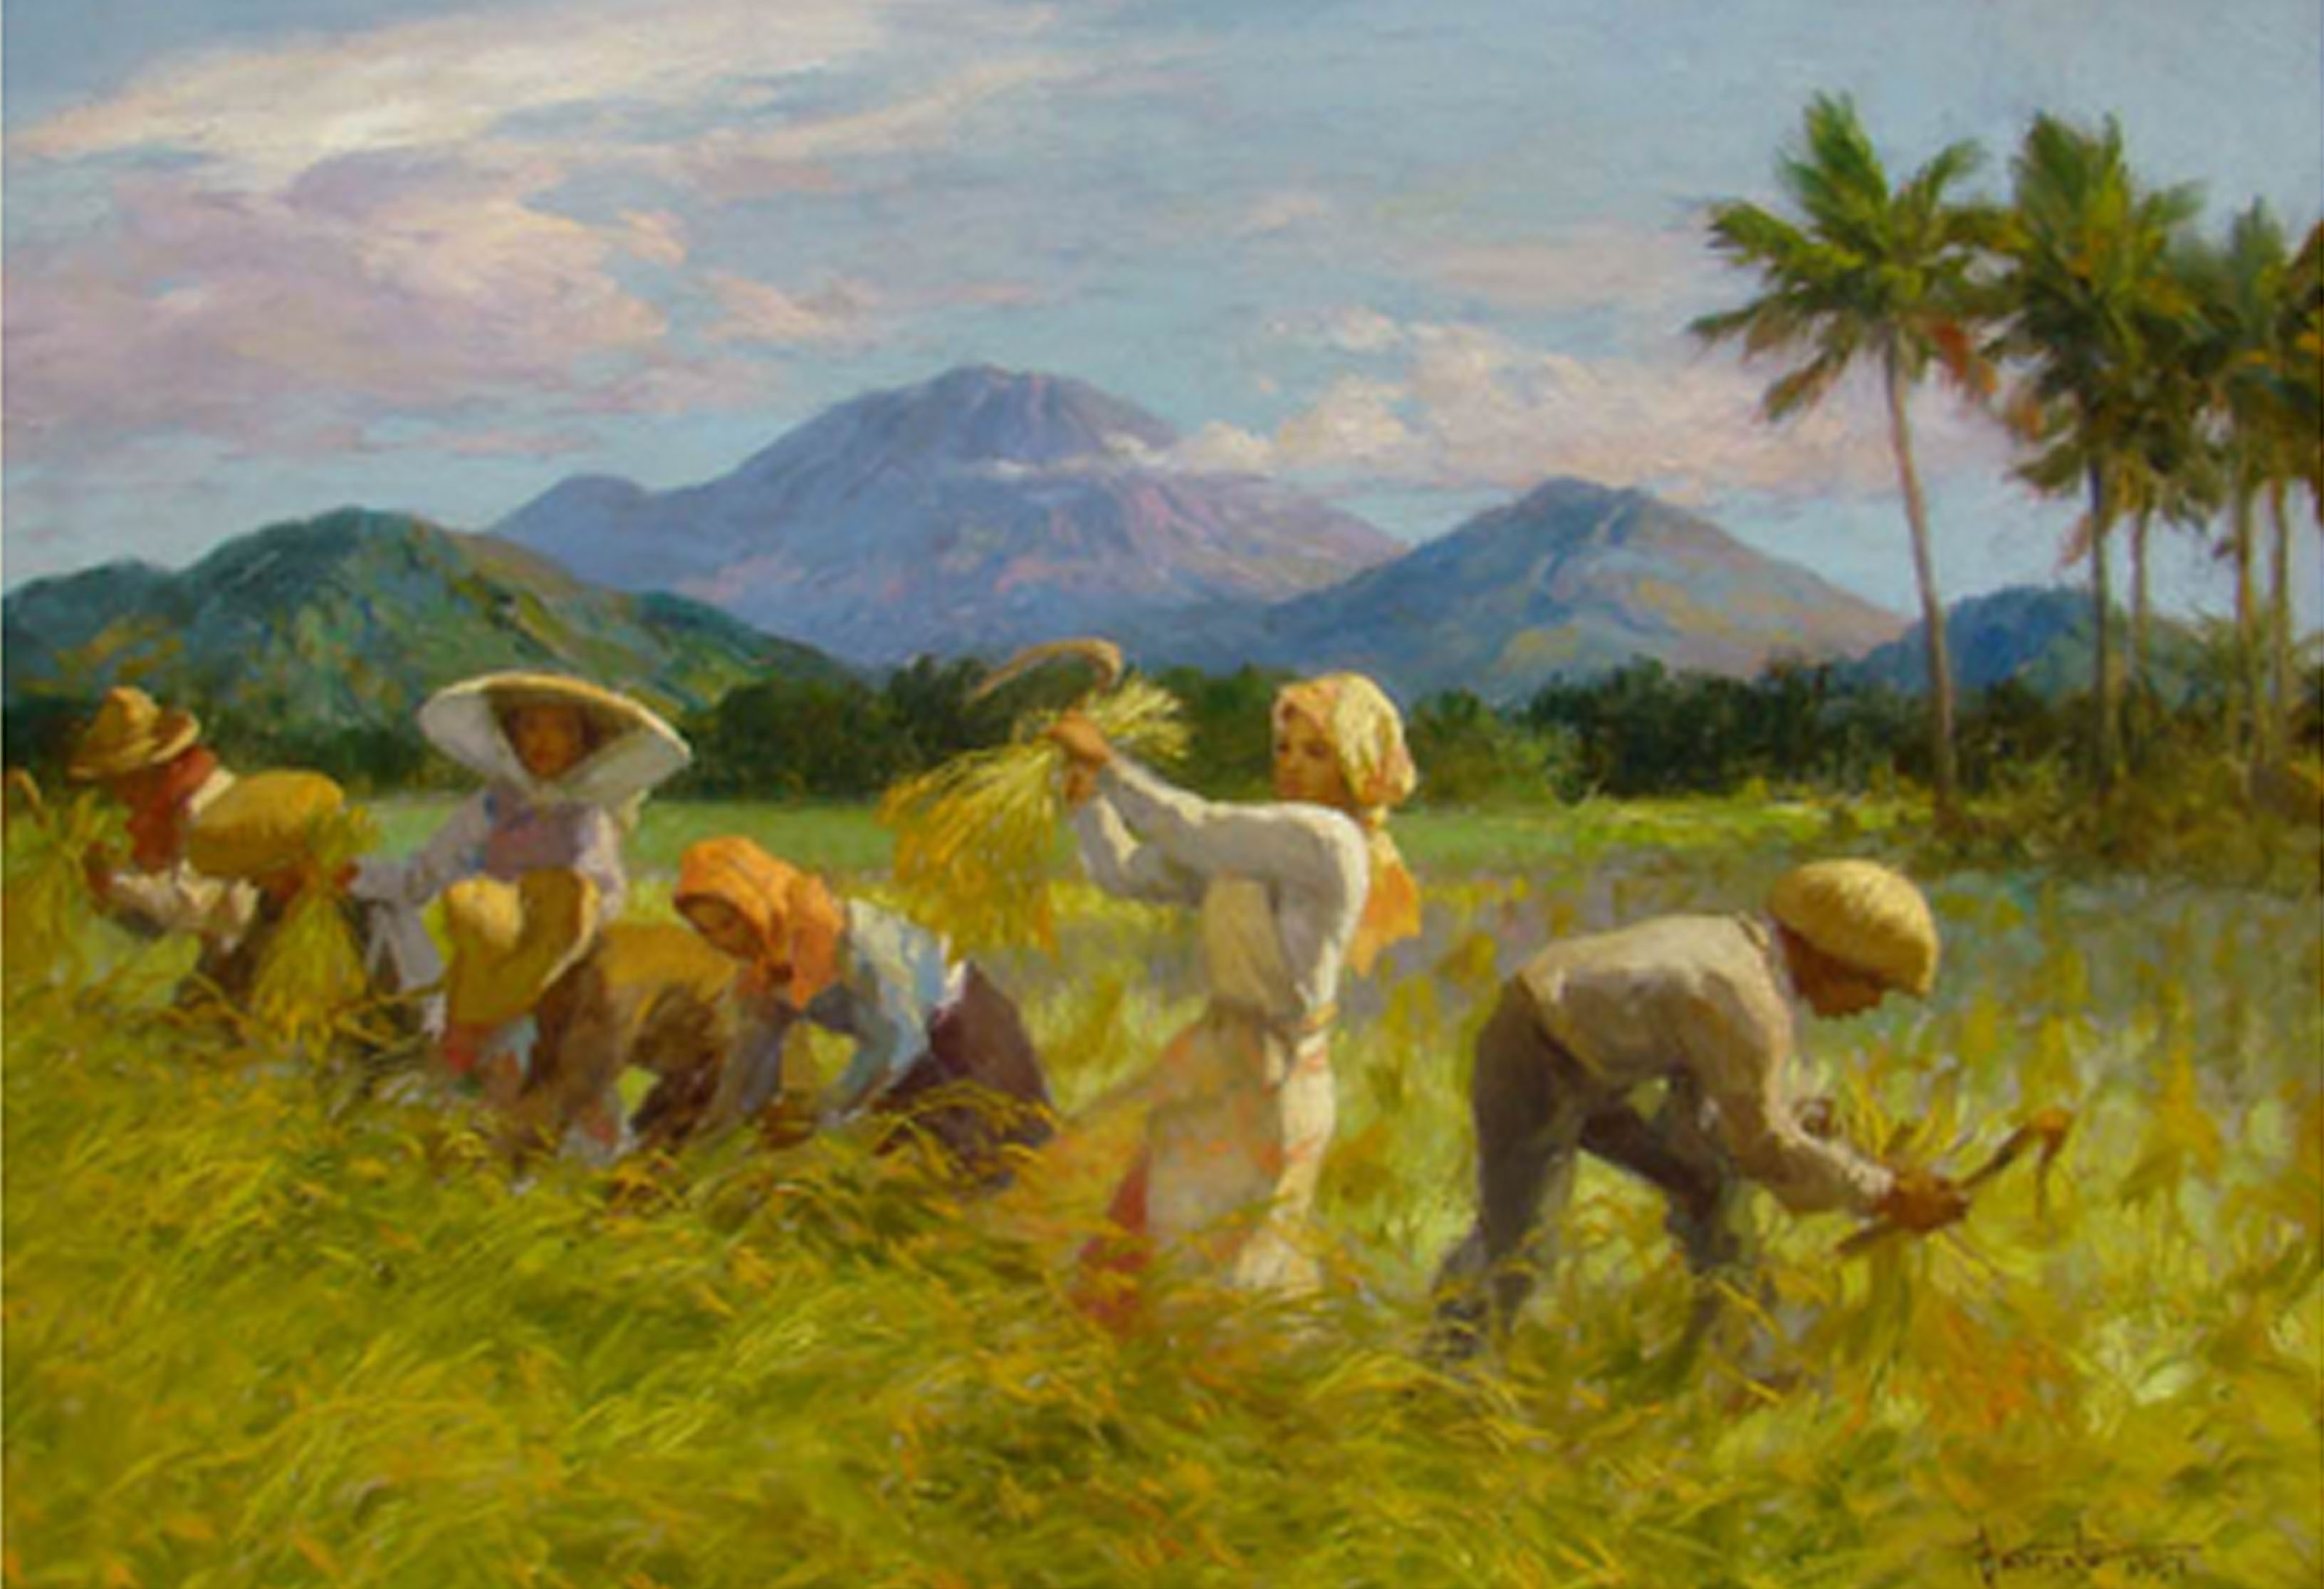 the mountains in fernando amorsolo 39 s paintings